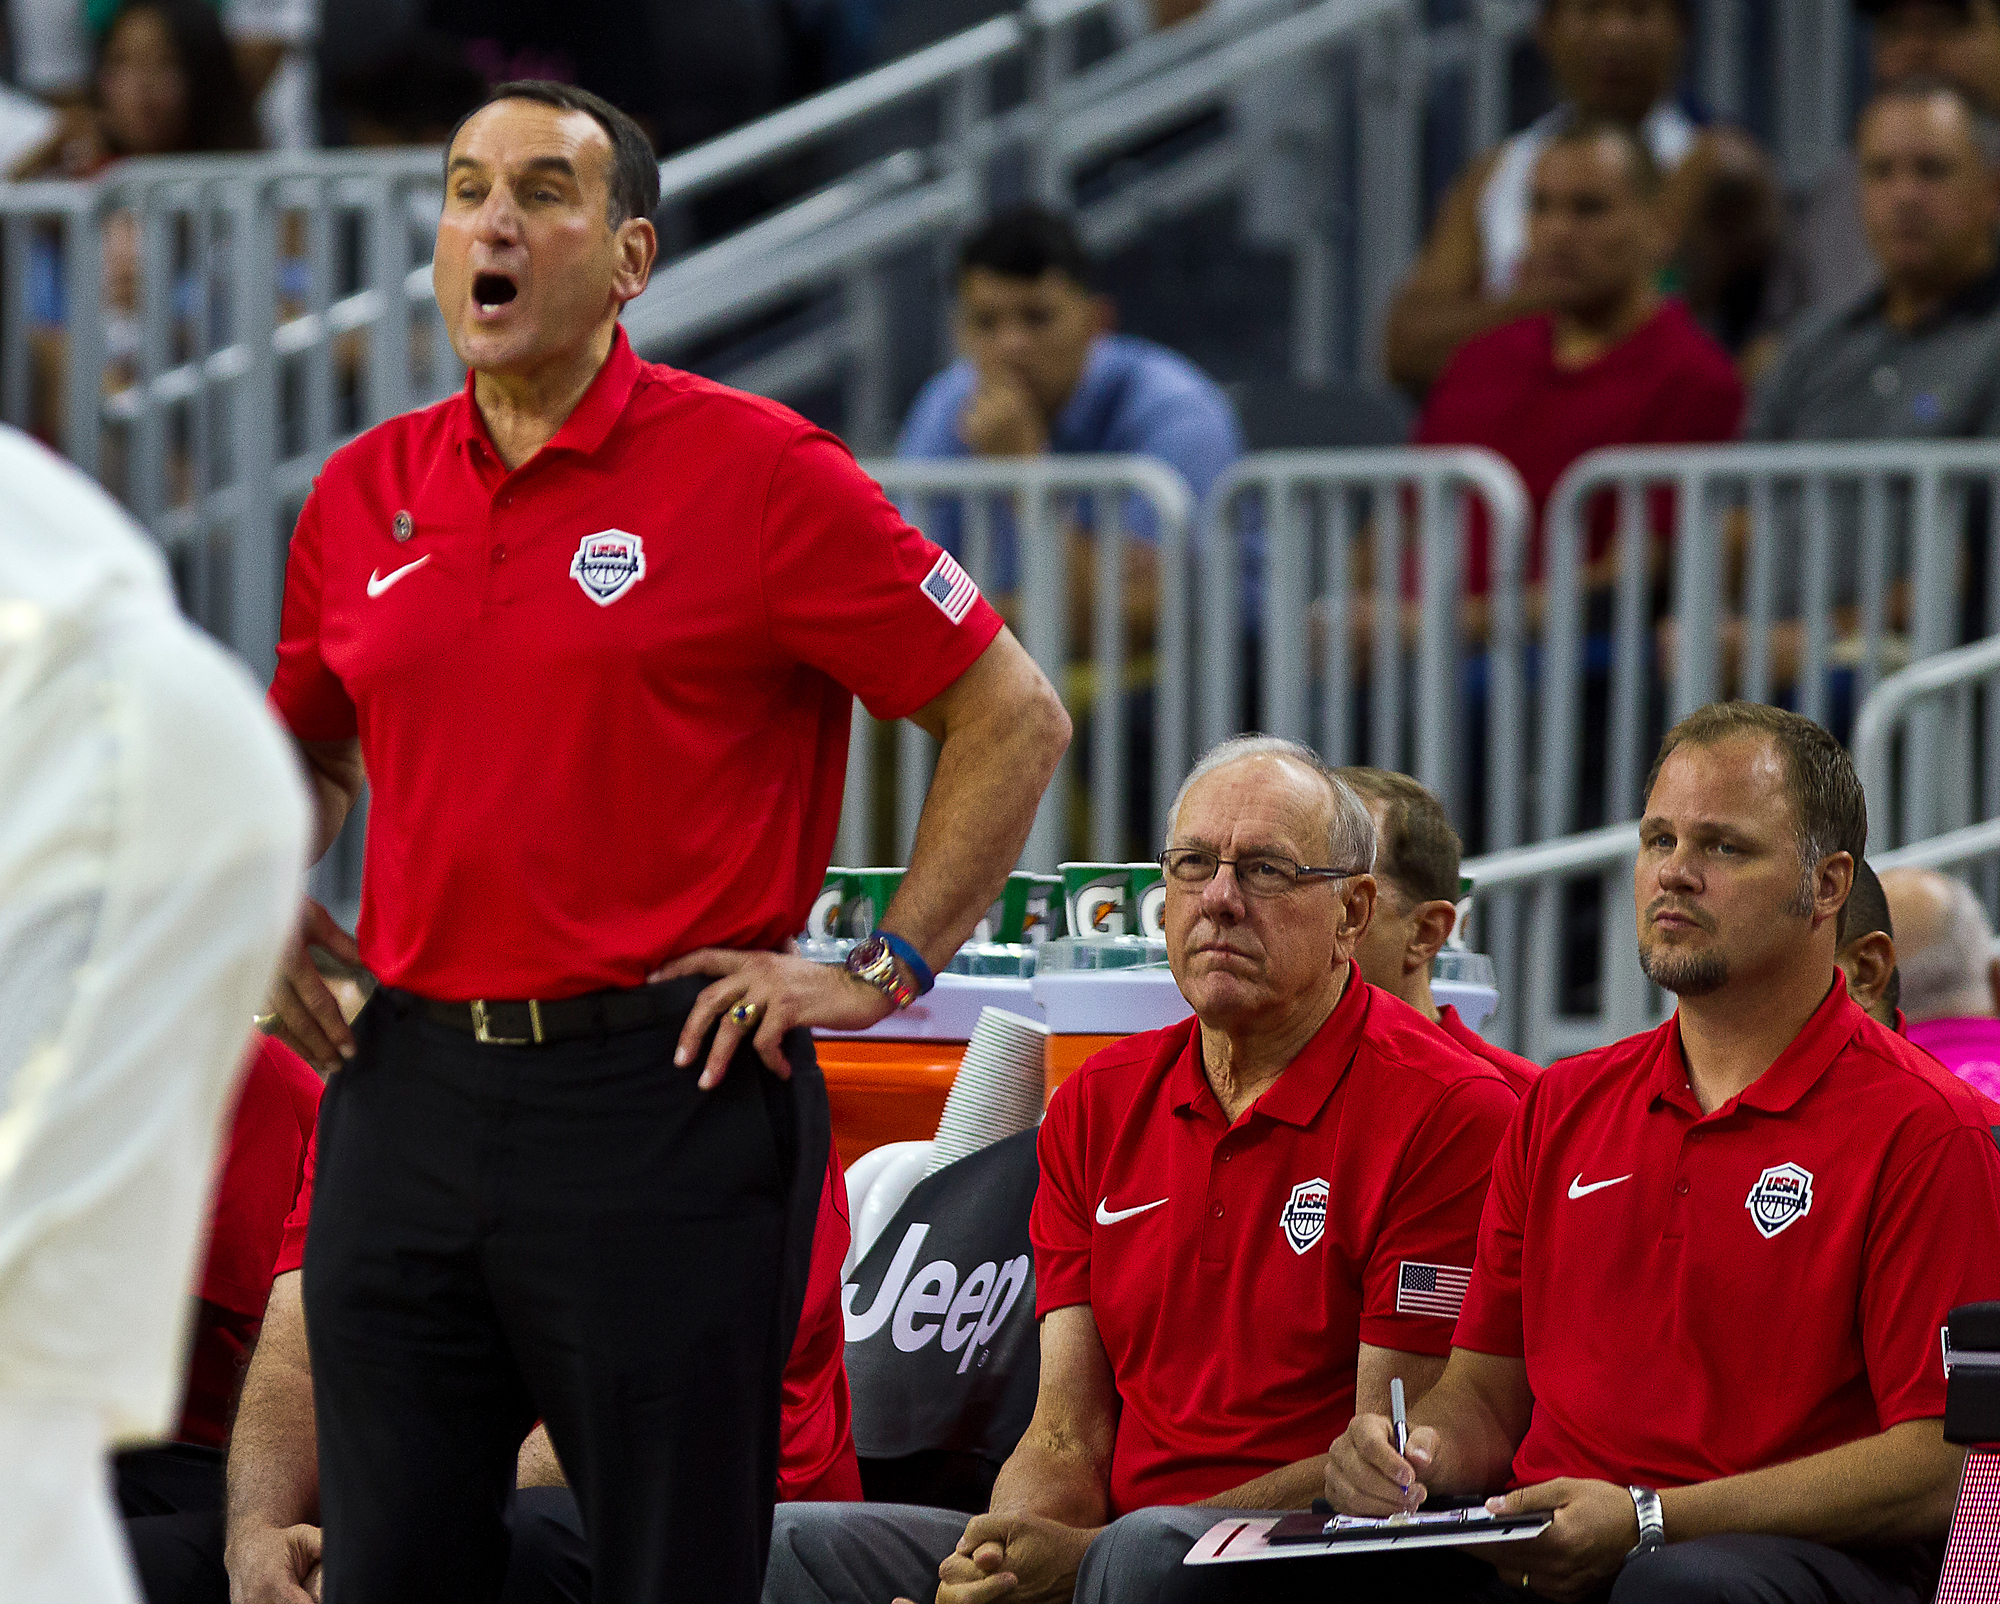 U.S. coach Mike Krzyzewski yells during the team's exhibition basketball game against Argentina on Friday, July 22, 2016, in Las Vegas. The United States won 111-74. (AP Photo/L.E. Baskow)